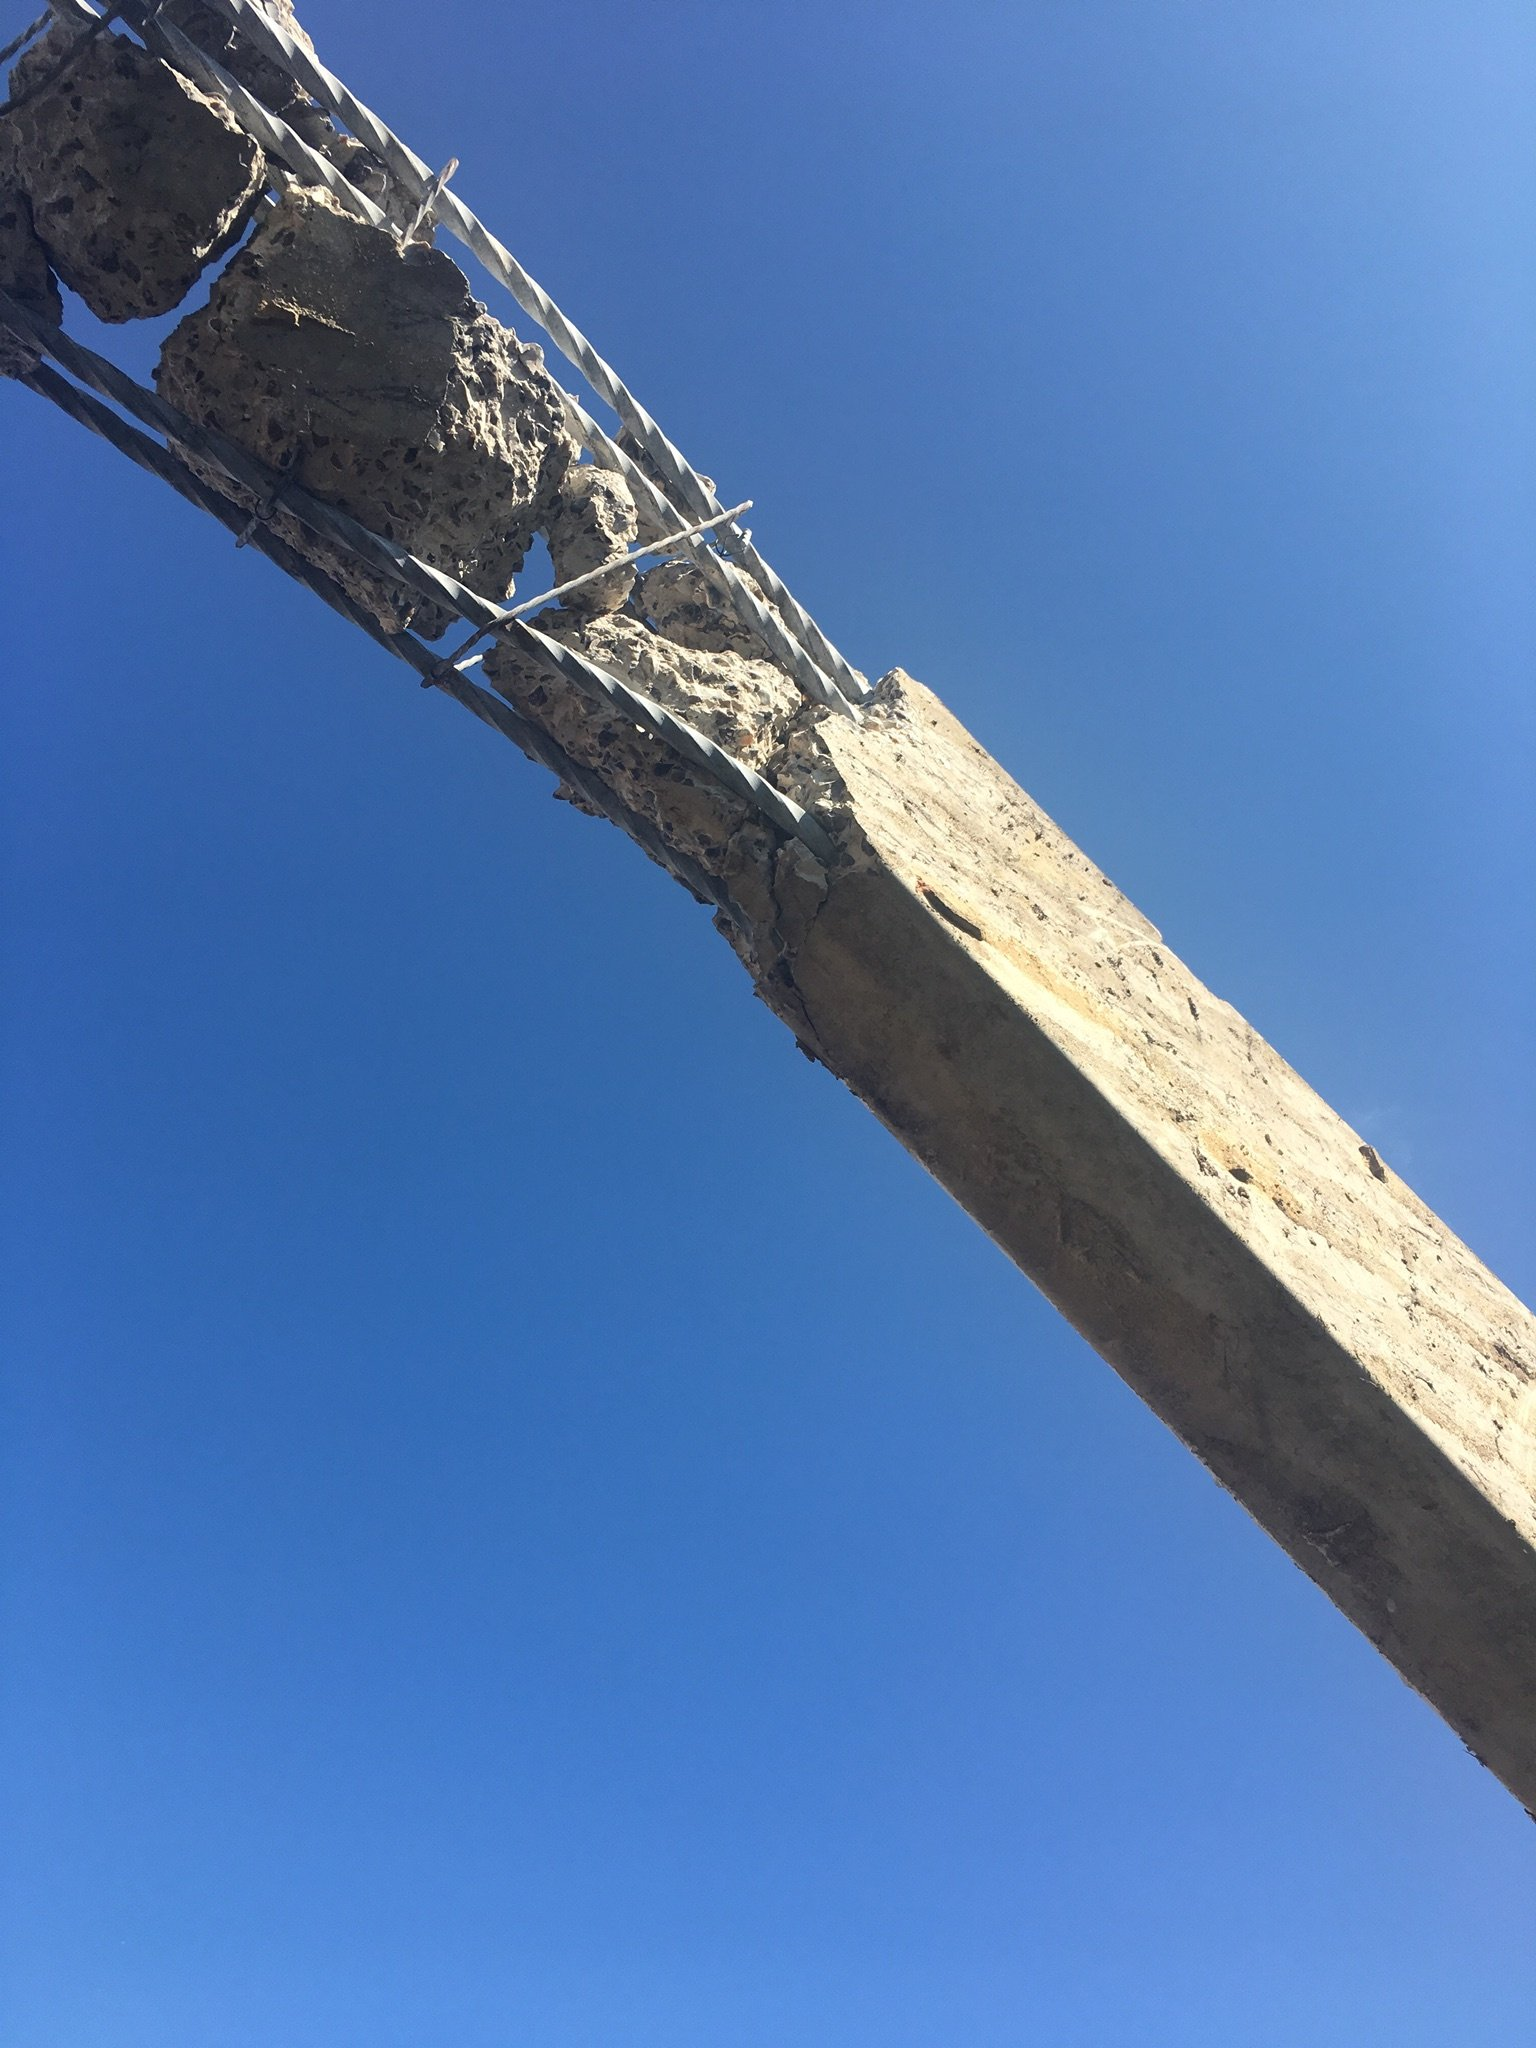 One bay was taken away, this picture shows the internal rebar of the main roof concrete beam